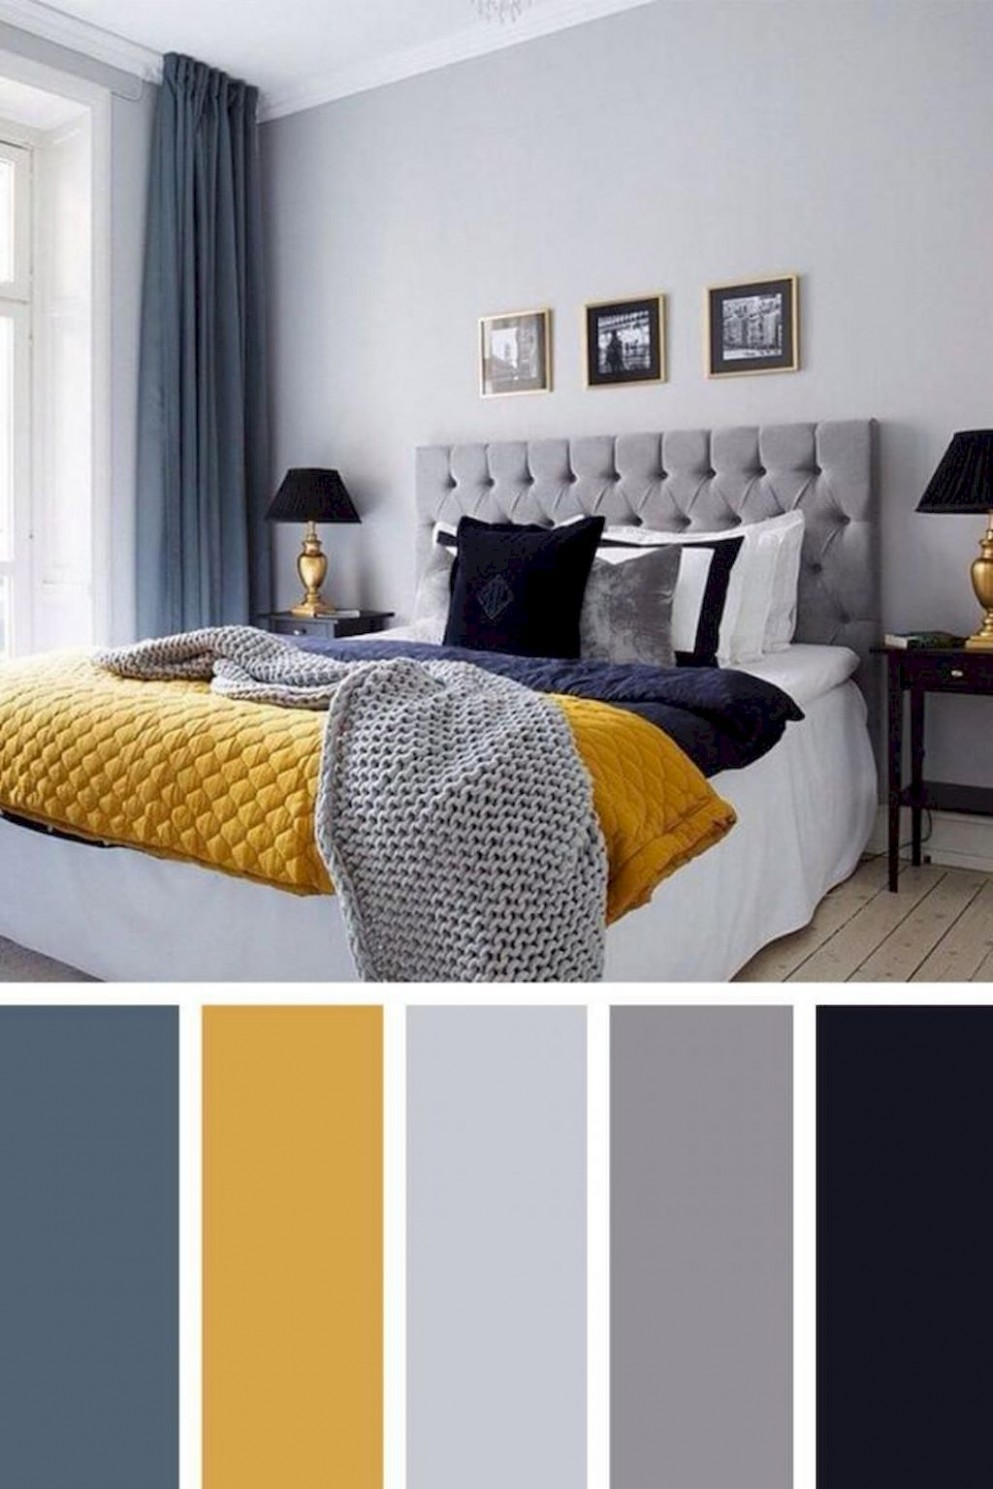 9 Simple Bedroom Decorating Ideas with Beautiful Color  - Bedroom Colour Ideas